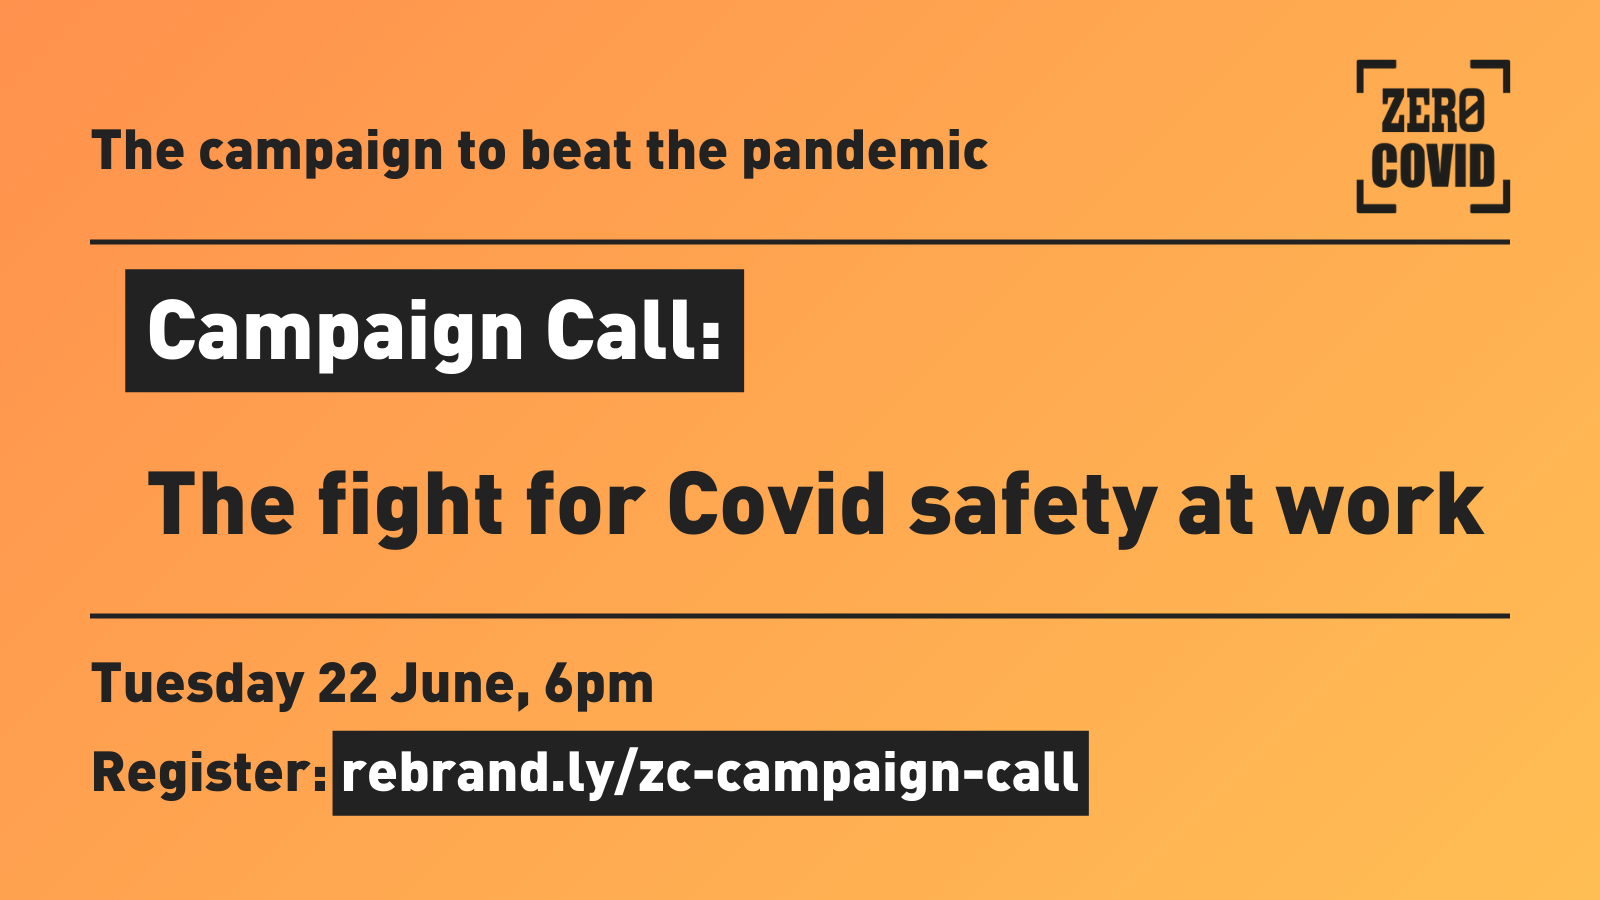 """An image publicising an event """"The fight for Covid safety at work"""" at 6pm on Tuesday 22 June"""